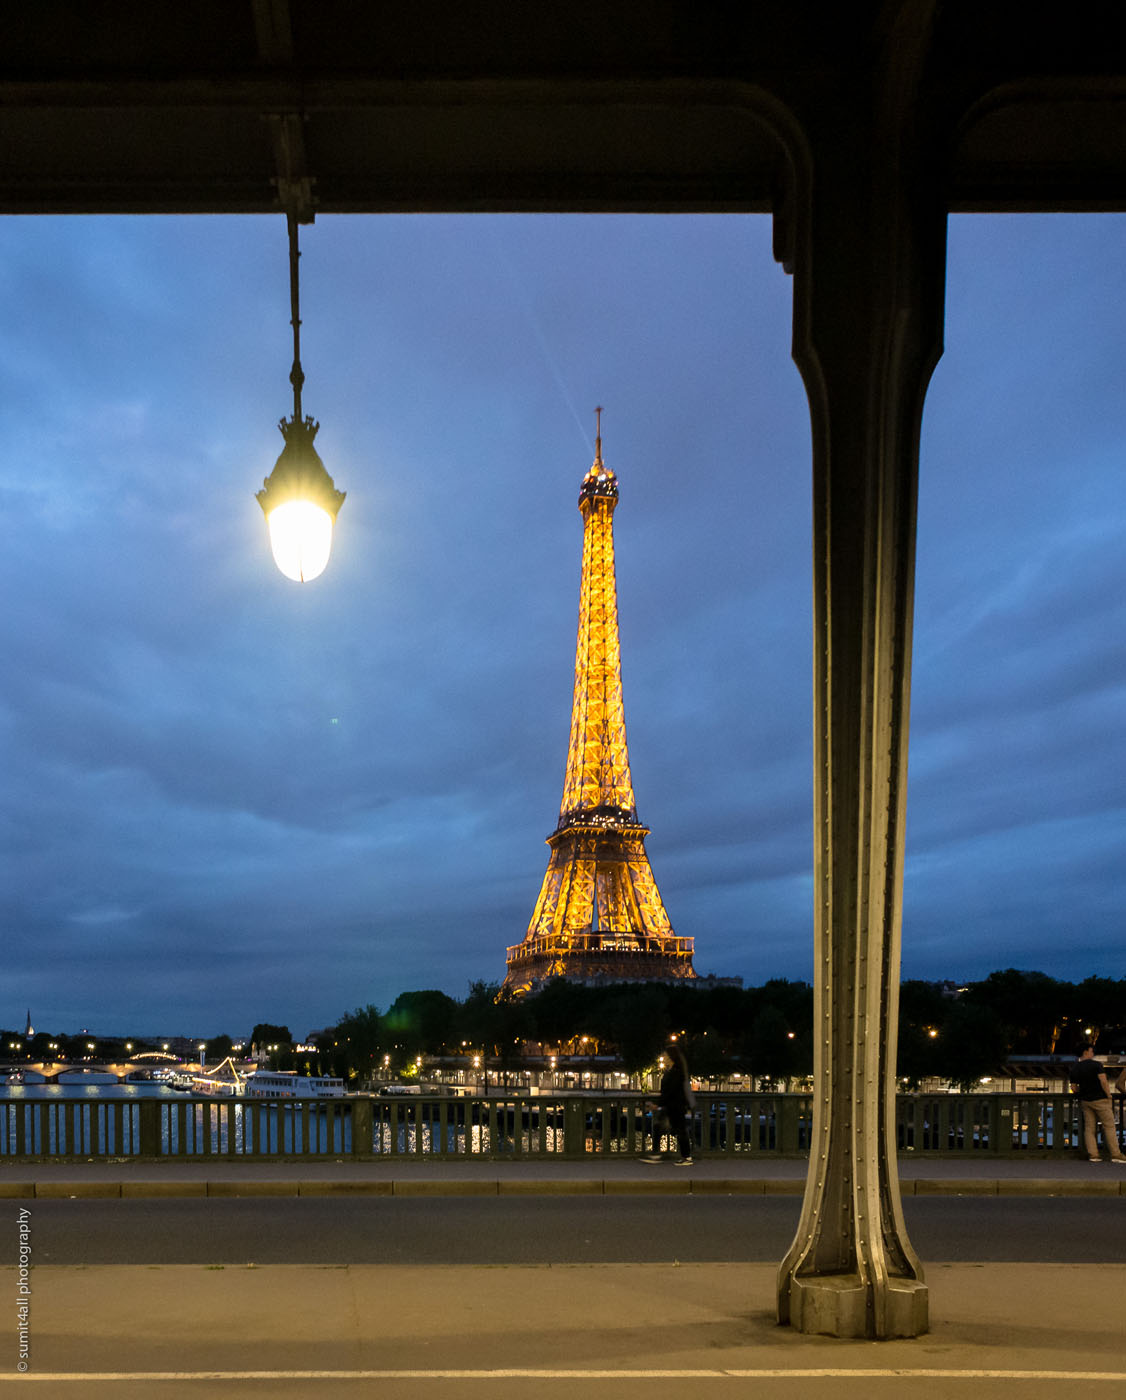 The lights of the Eiffel Tower from the Bir Hakeim bridge, which is also lit with small and beautiful bulbs